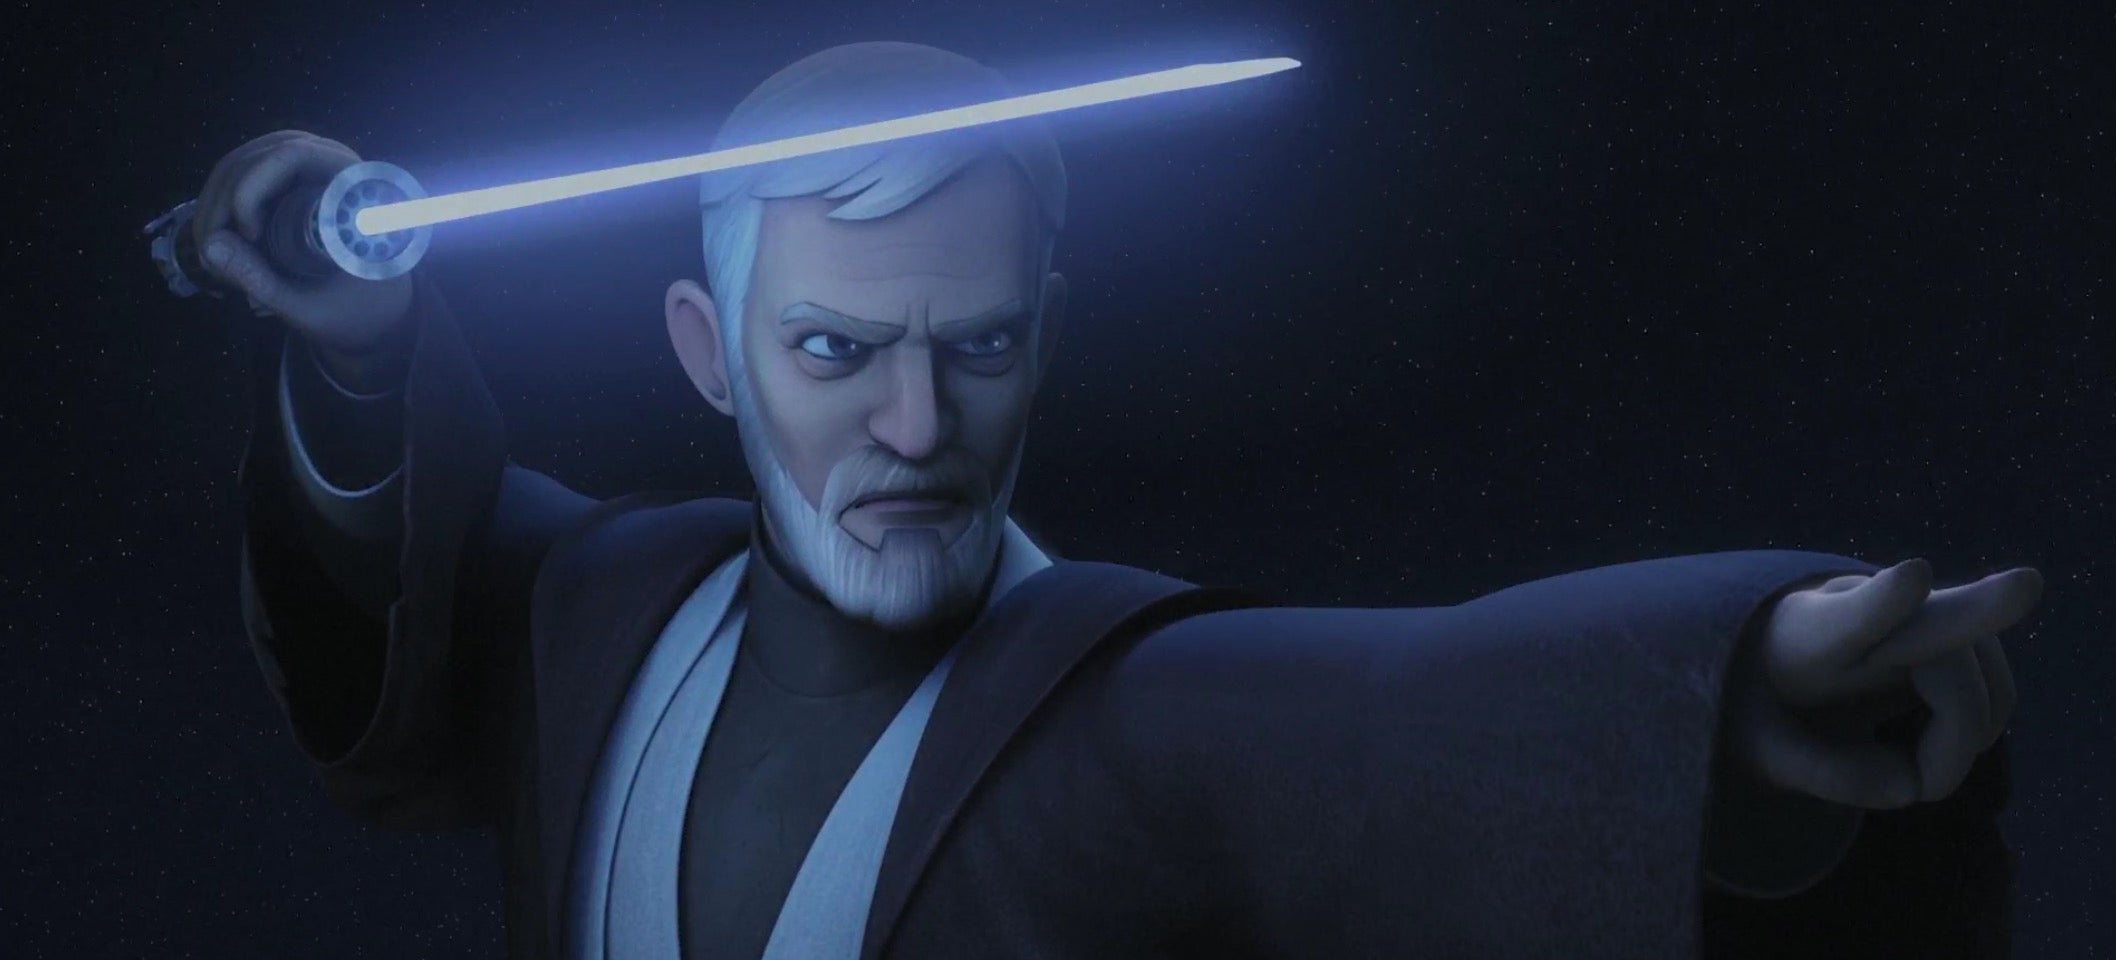 Obi-Wan Kenobi And Darth Maul Are Getting A Rematch on Star Wars Rebels